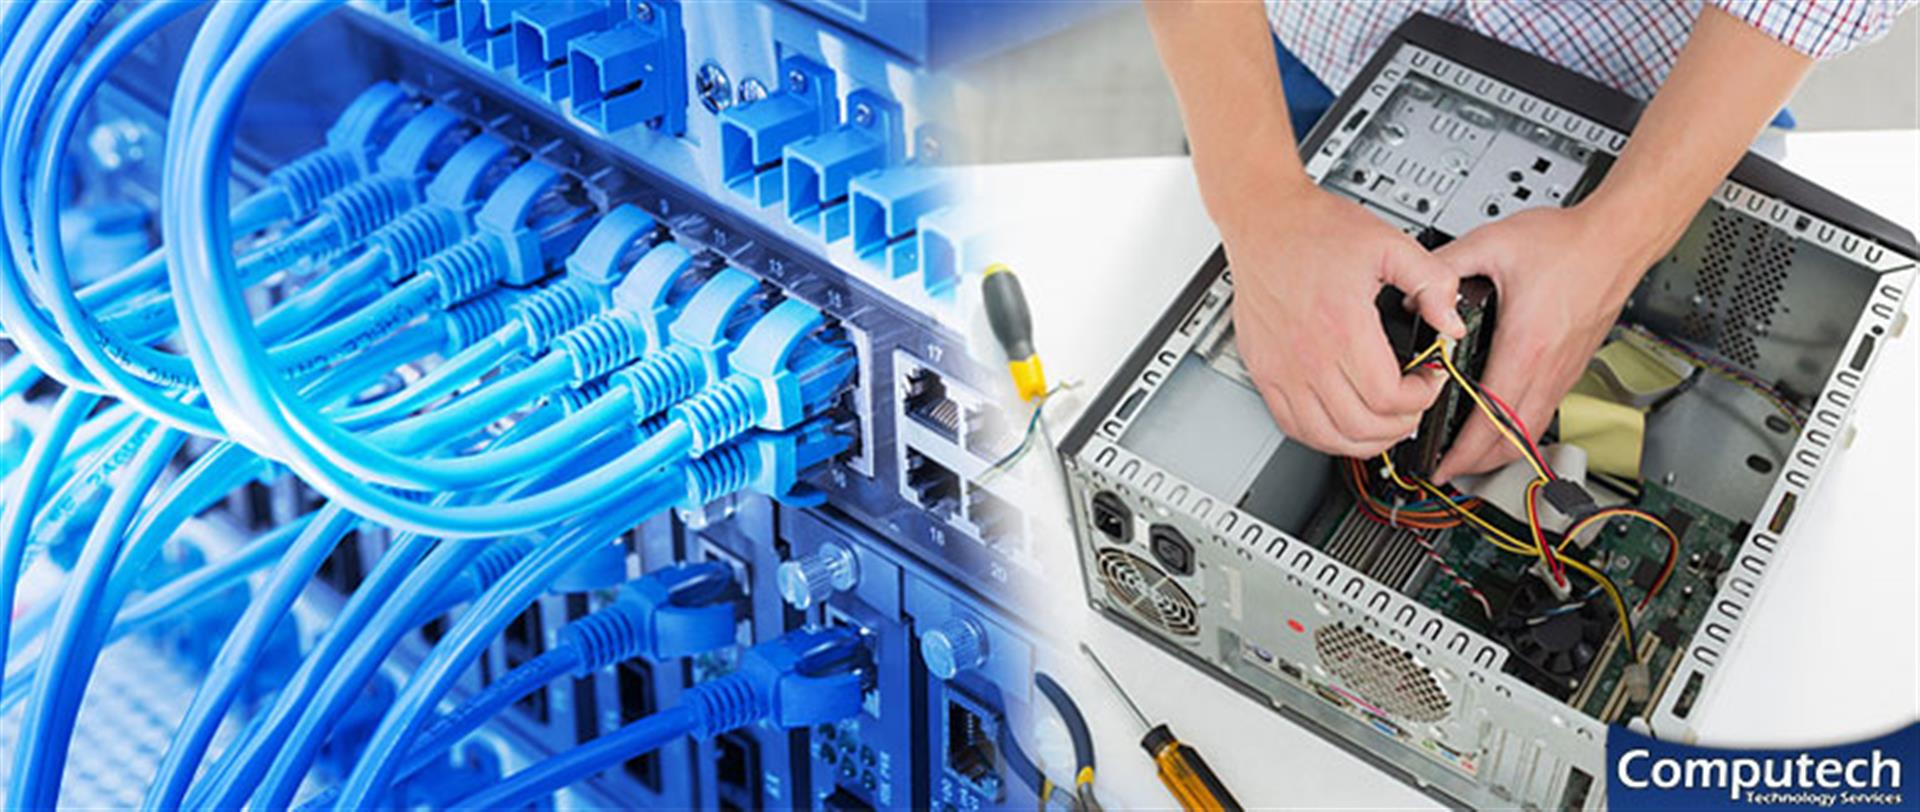 Charlottesville Virginia On-Site PC & Printer Repairs, Networks, Voice & Data Cabling Solutions